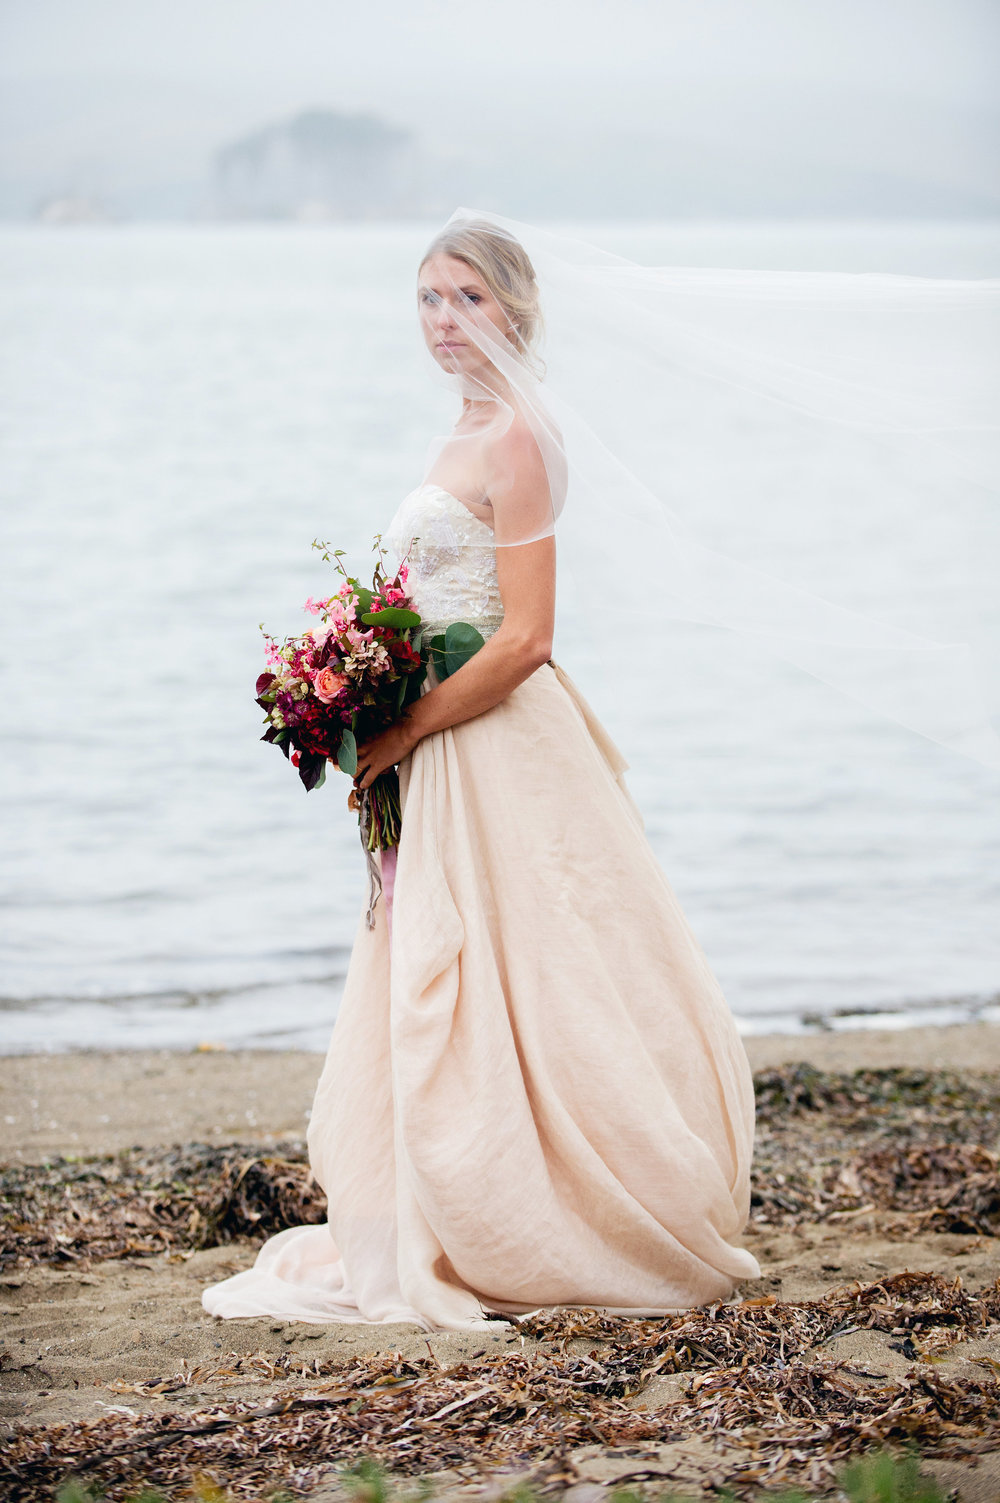 Carol Hannah Bridal Tritea, Kensington, Sequin Smoking Jacket Silver Linings Veil801.jpg